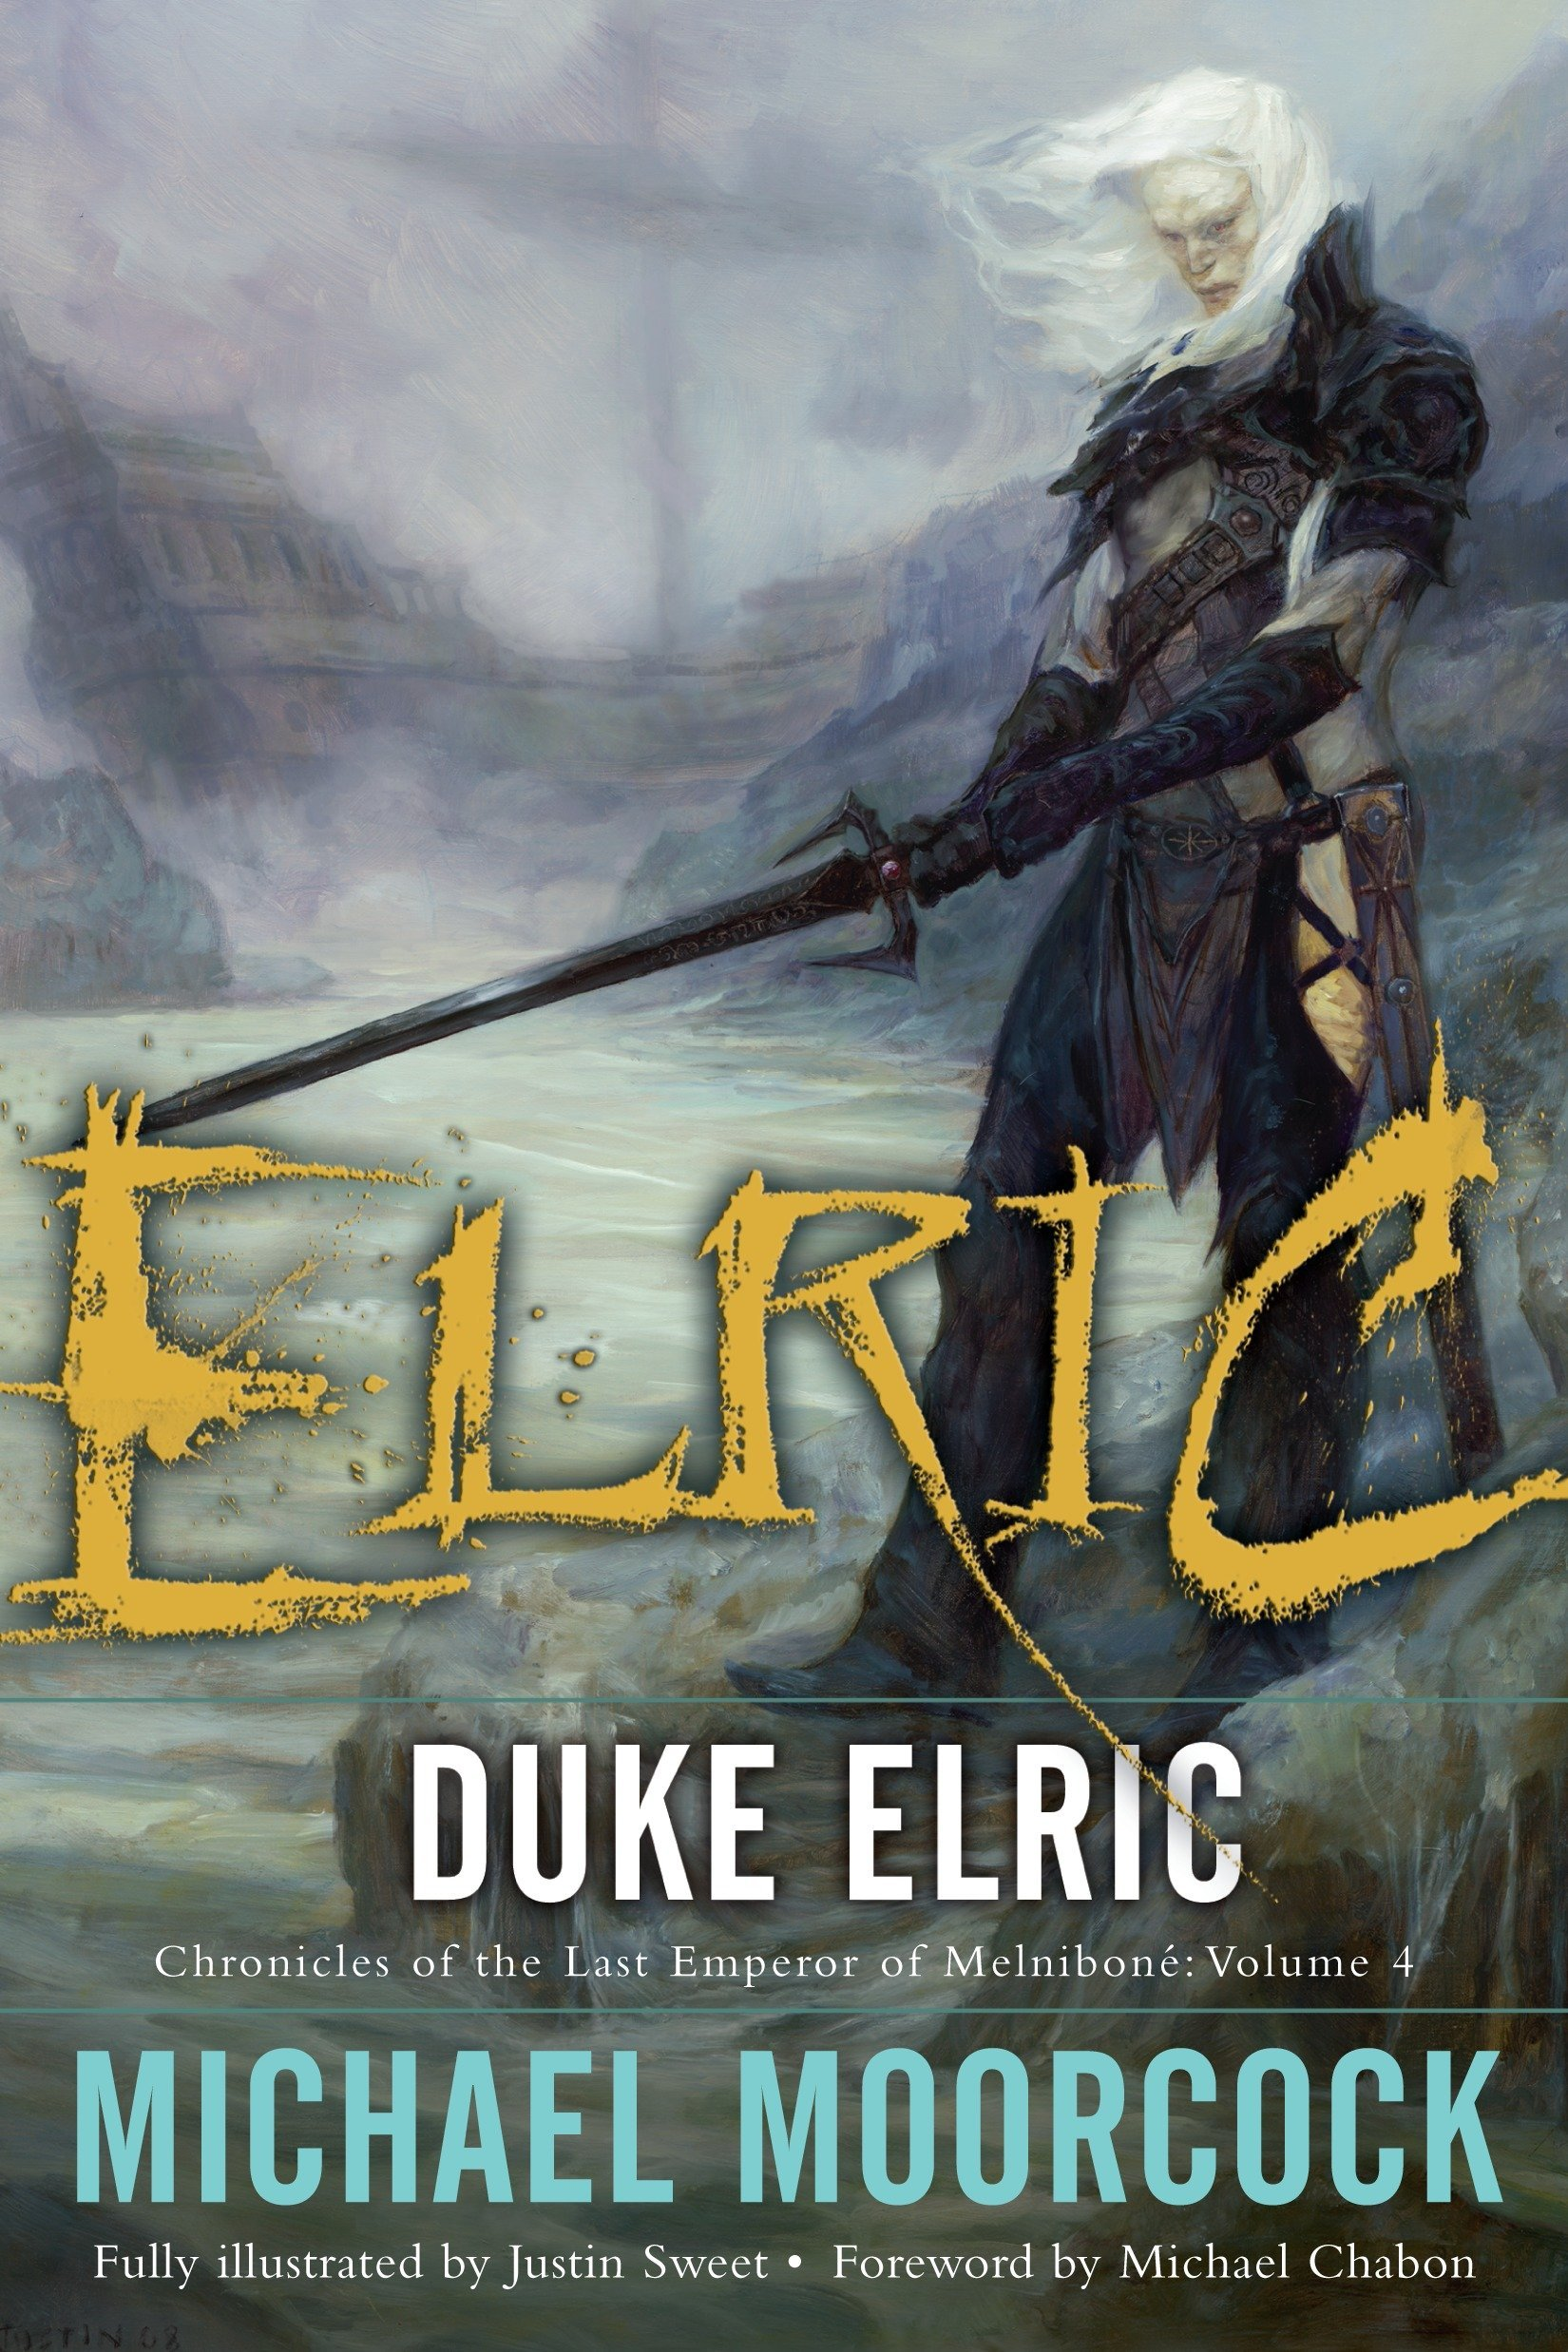 Download Duke Elric (Chronicles of the Last Emperor of Melniboné, Vol. 4) ebook